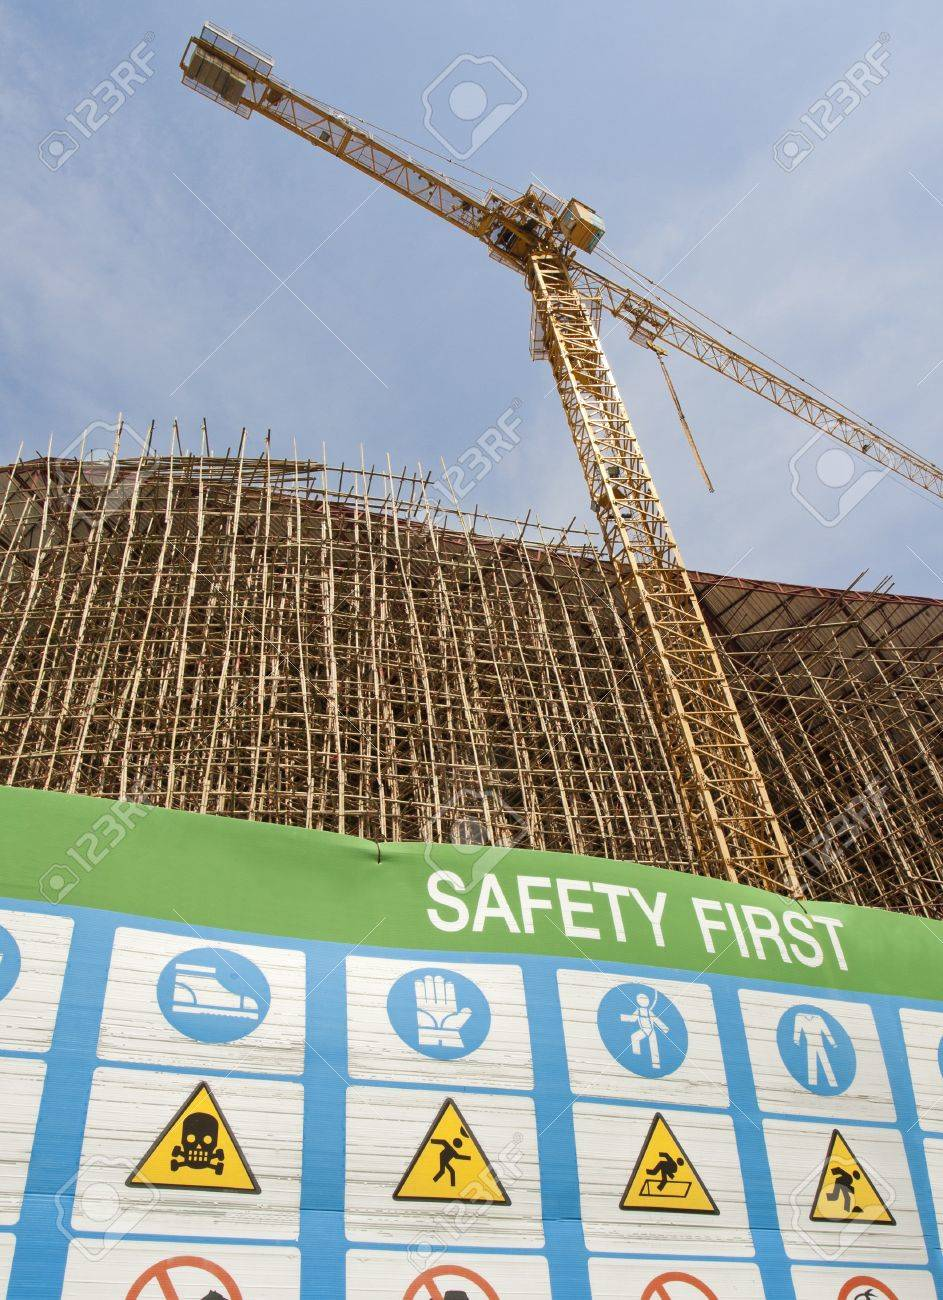 Safety First Symbol In Construction Site Stock Photo Picture And